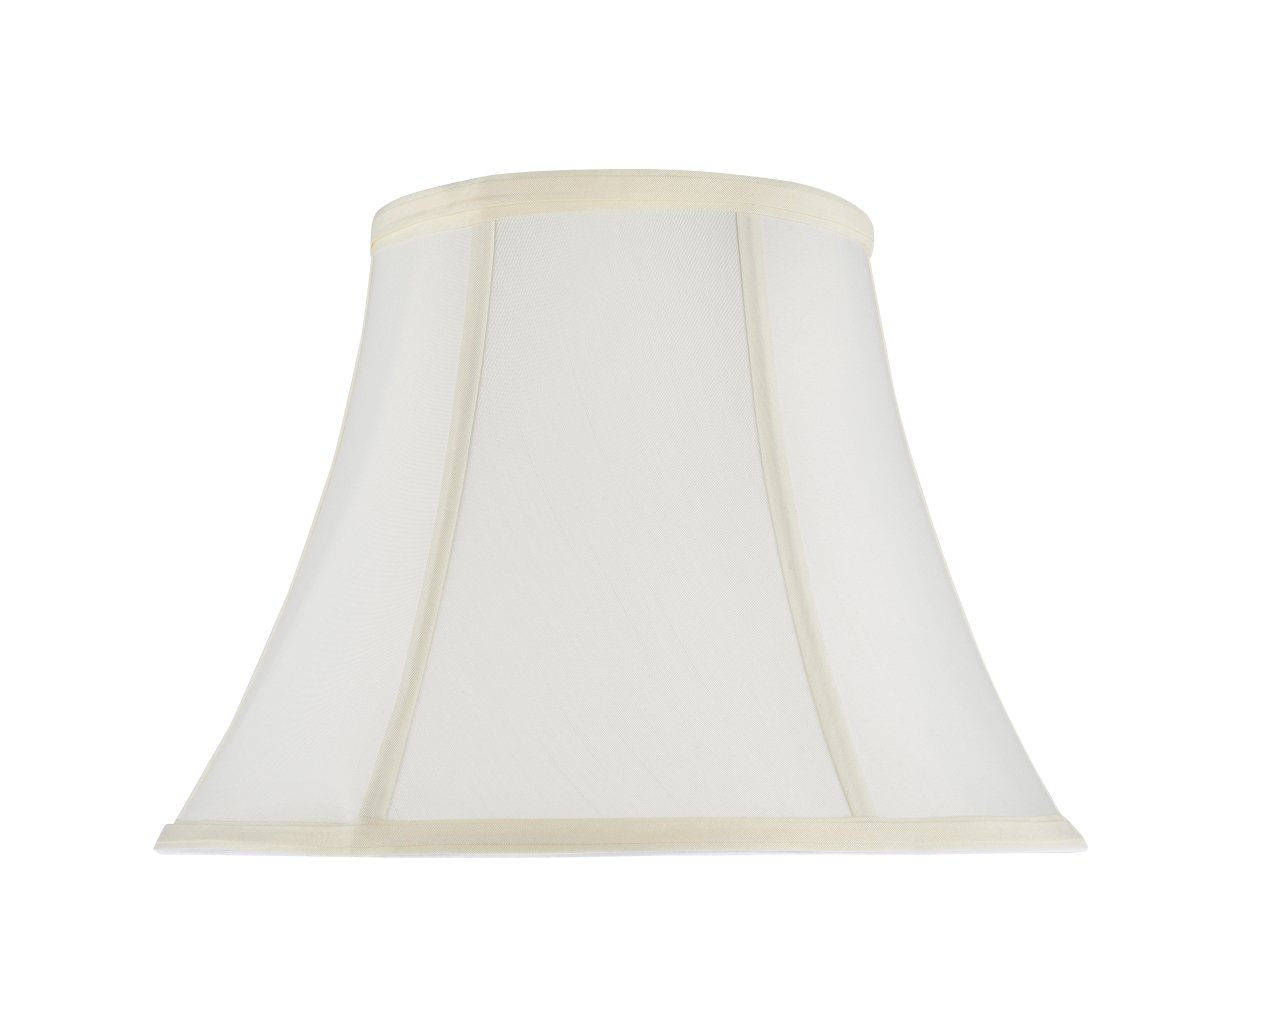 Aspen Creative 30216 Transitional Bell Shaped Spider Construction Lamp Shade in Off-White, 13'' Wide (7'' x 13'' x 9 1/2'')